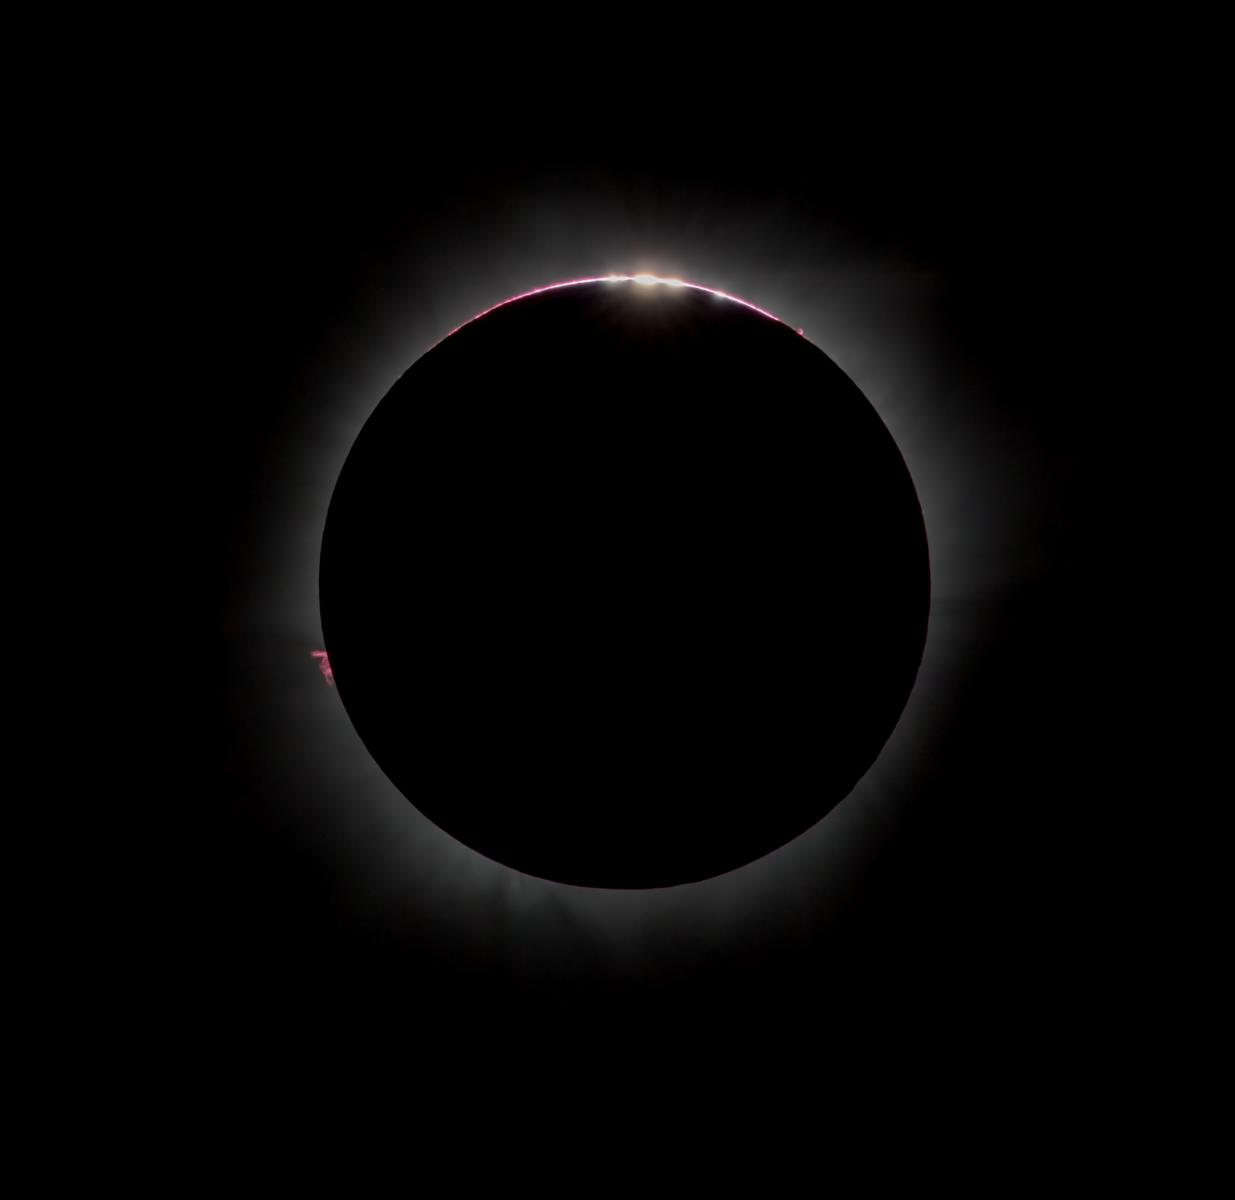 Total Eclipse state-side. UK getting Hot and Humid